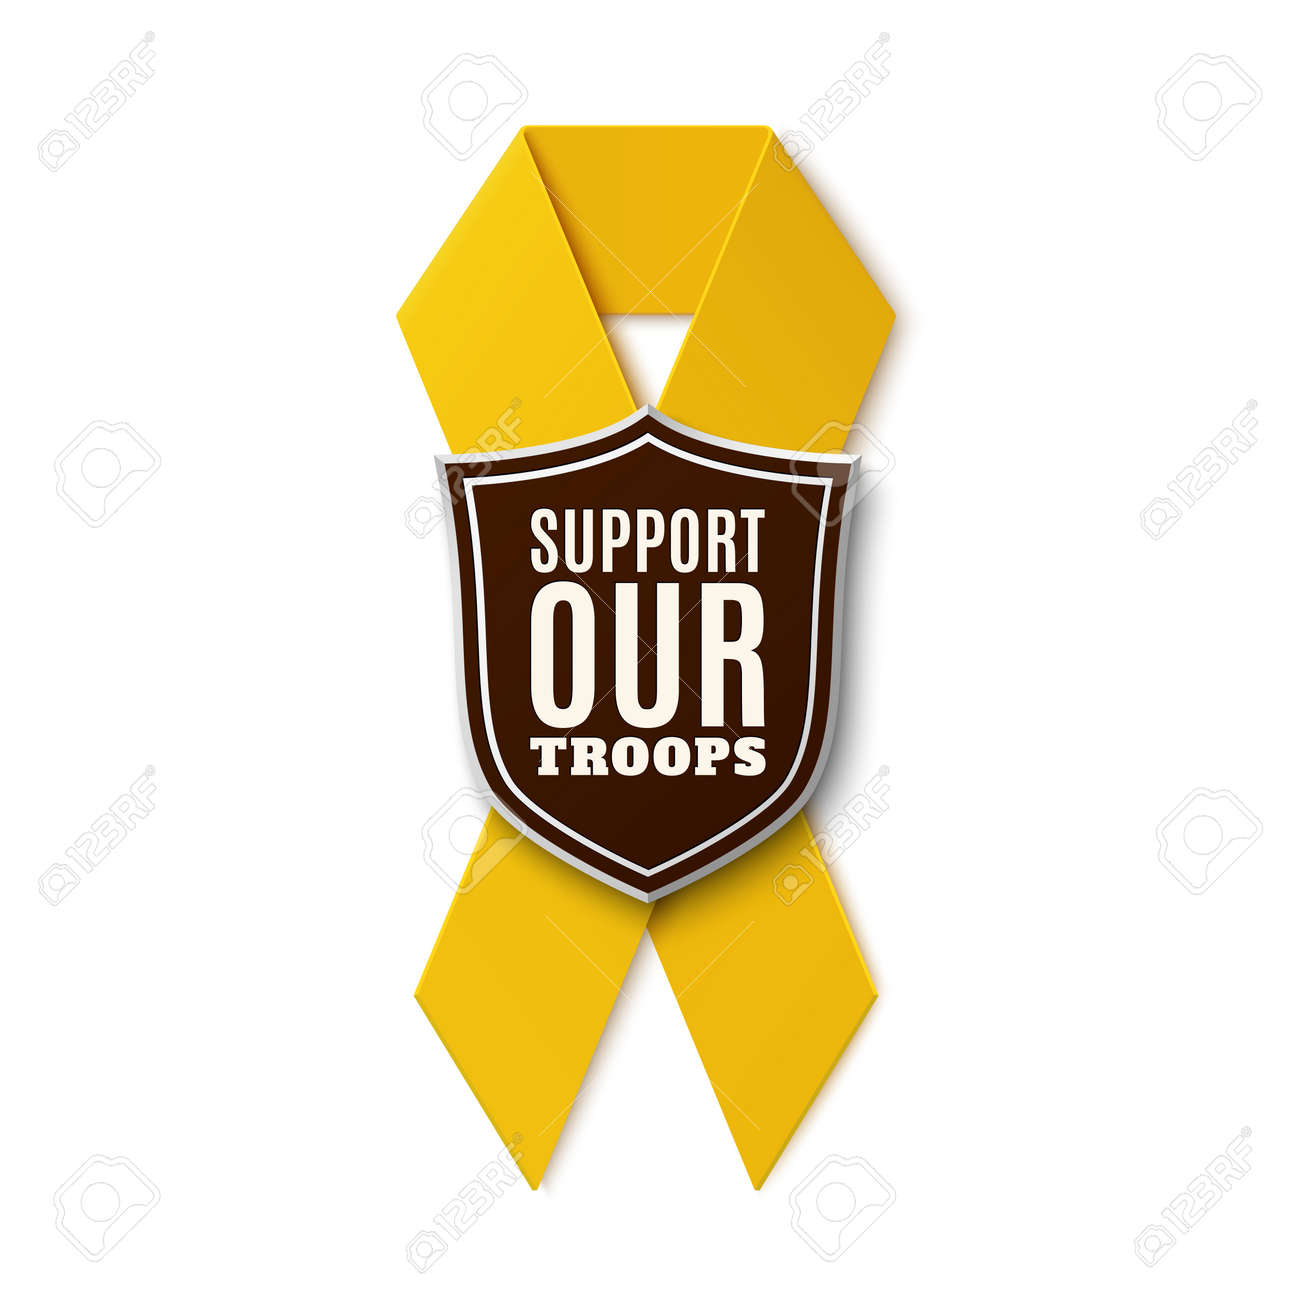 Support our troops. Yellow ribbon with shield isolated on white background. Vector illustration. - 52231707